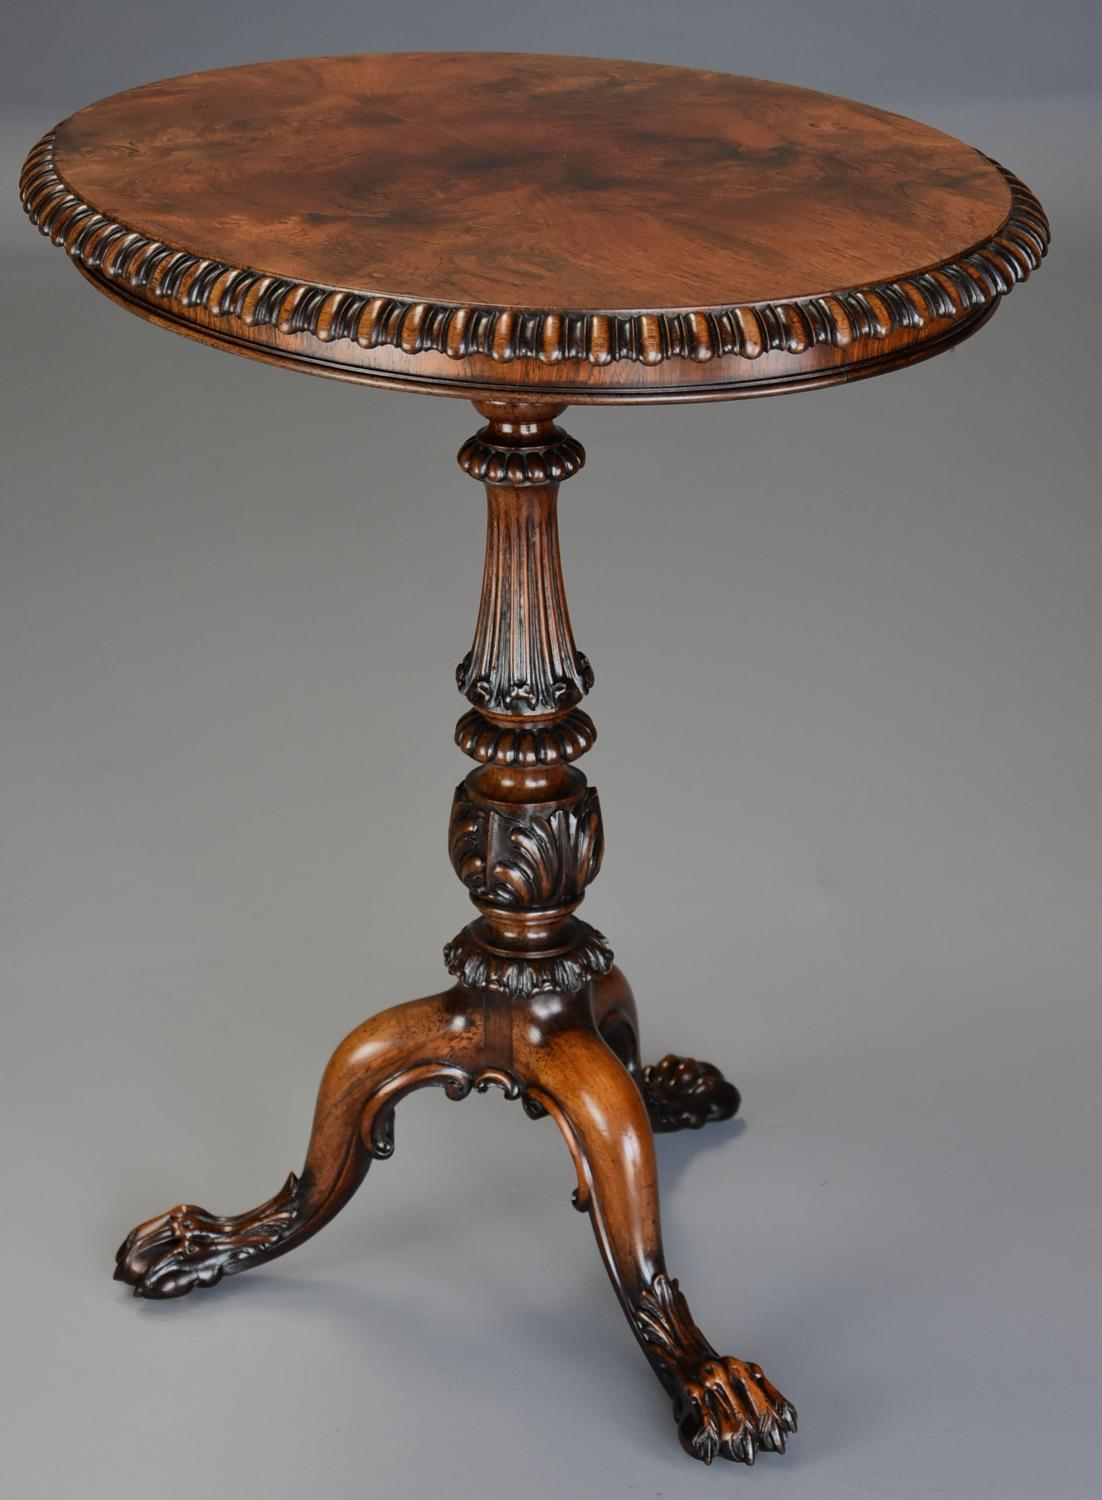 Superb example of a mid 19th century rosewood oval occasional table